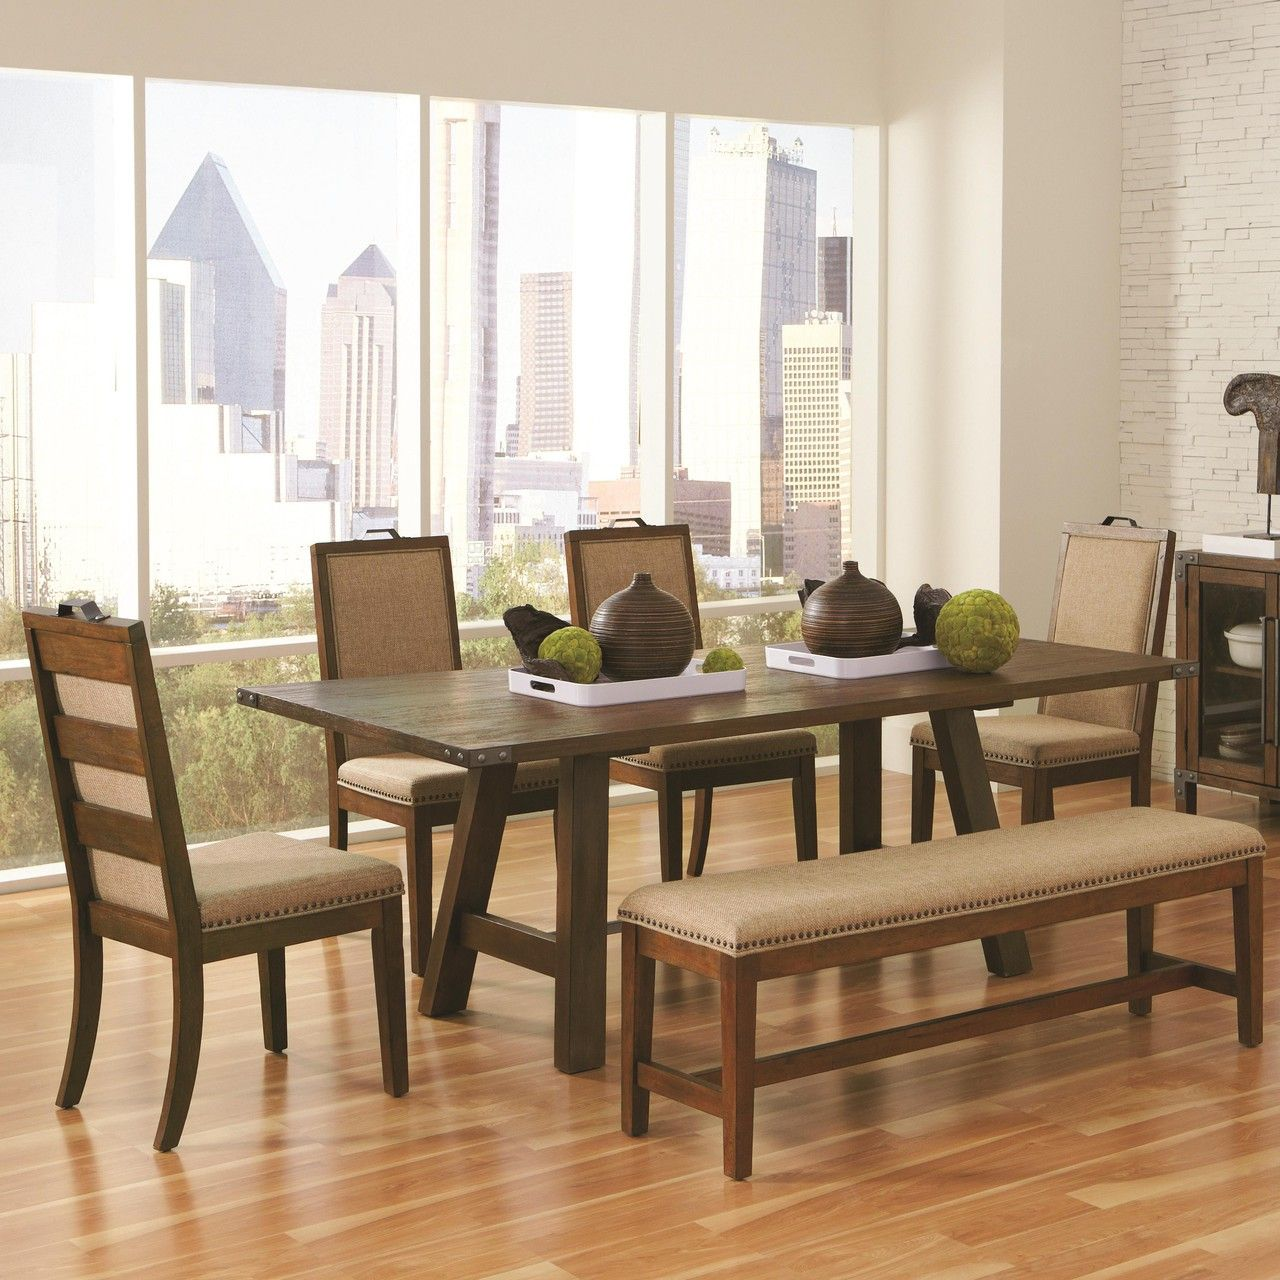 Phenomenal Arcadia 6Pc Weathered Acacia Dining Table With Chairs Ncnpc Chair Design For Home Ncnpcorg